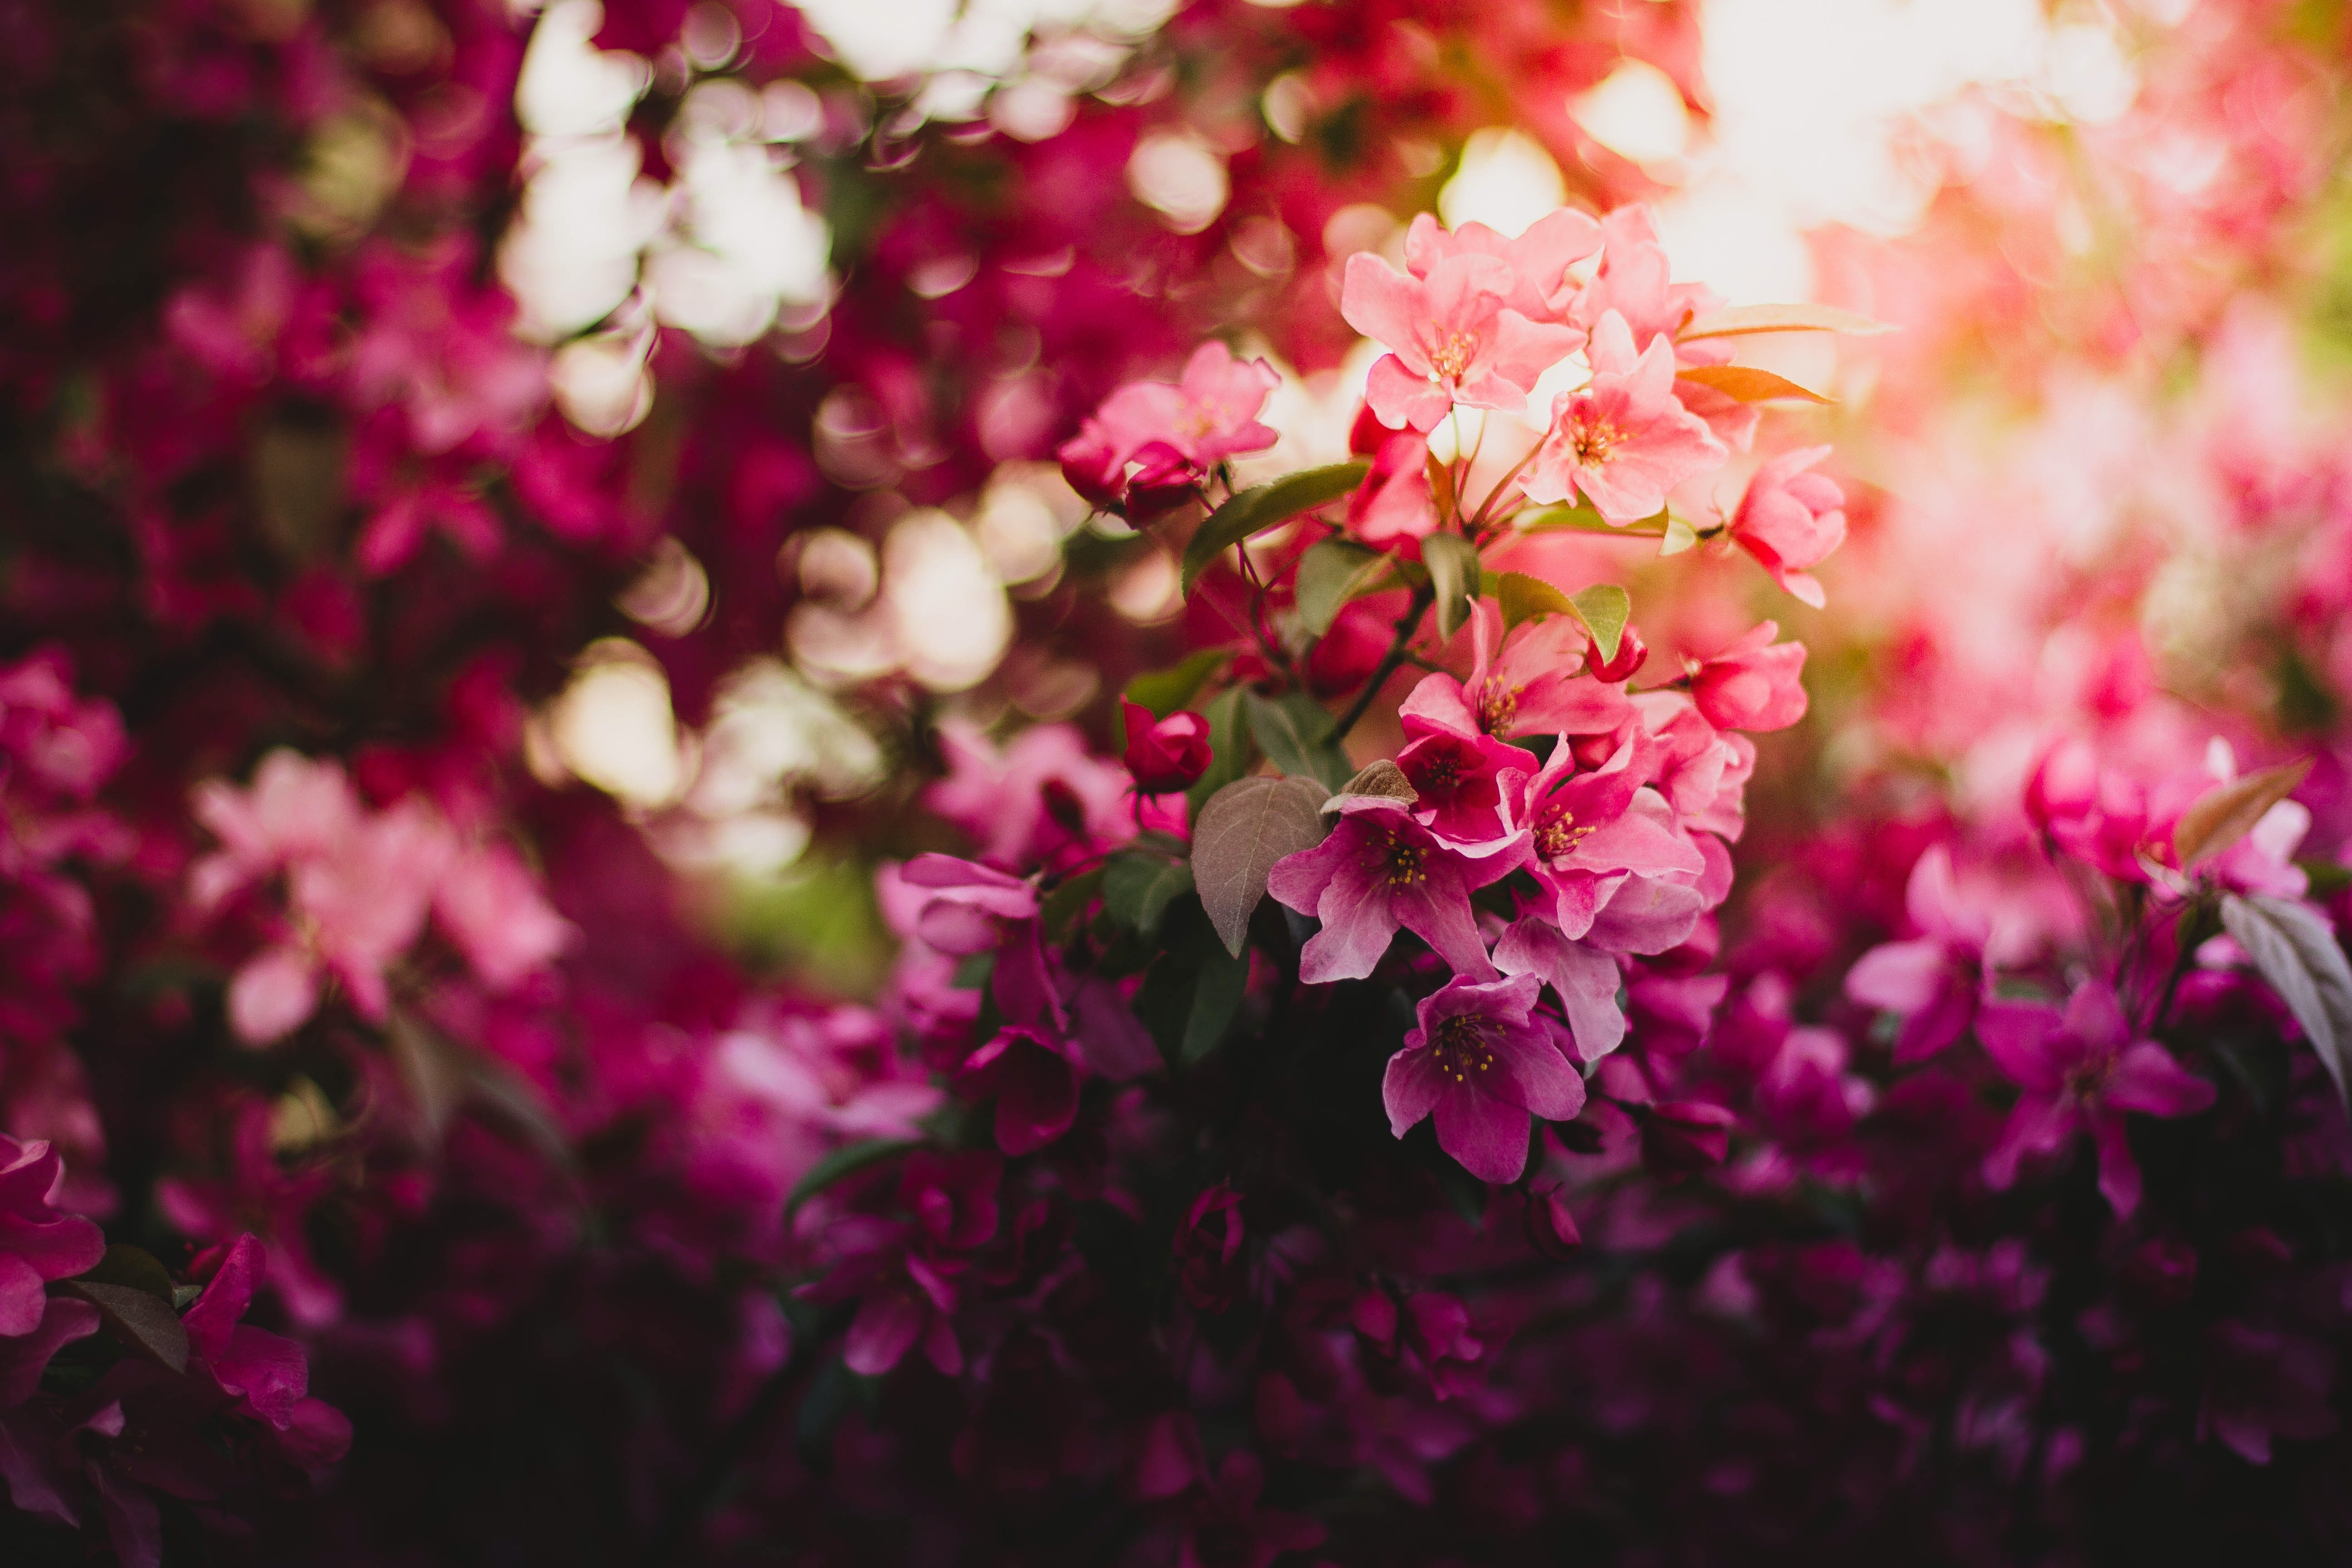 Flower images pexels free stock photos fetching more photos mightylinksfo Images